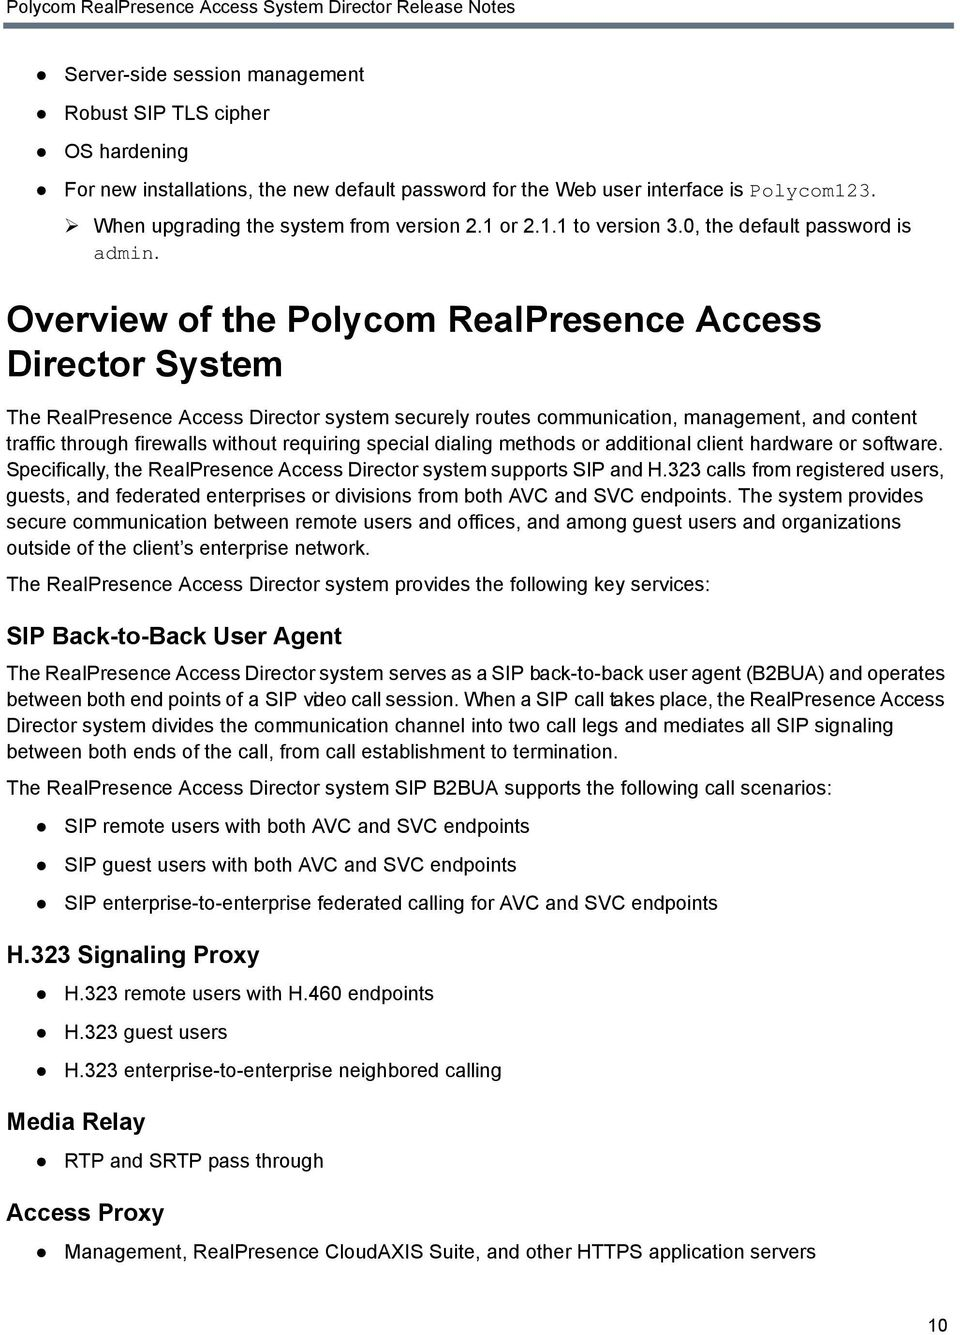 Overview of the Polycom RealPresence Access Director System The RealPresence Access Director system securely routes communication, management, and content traffic through firewalls without requiring